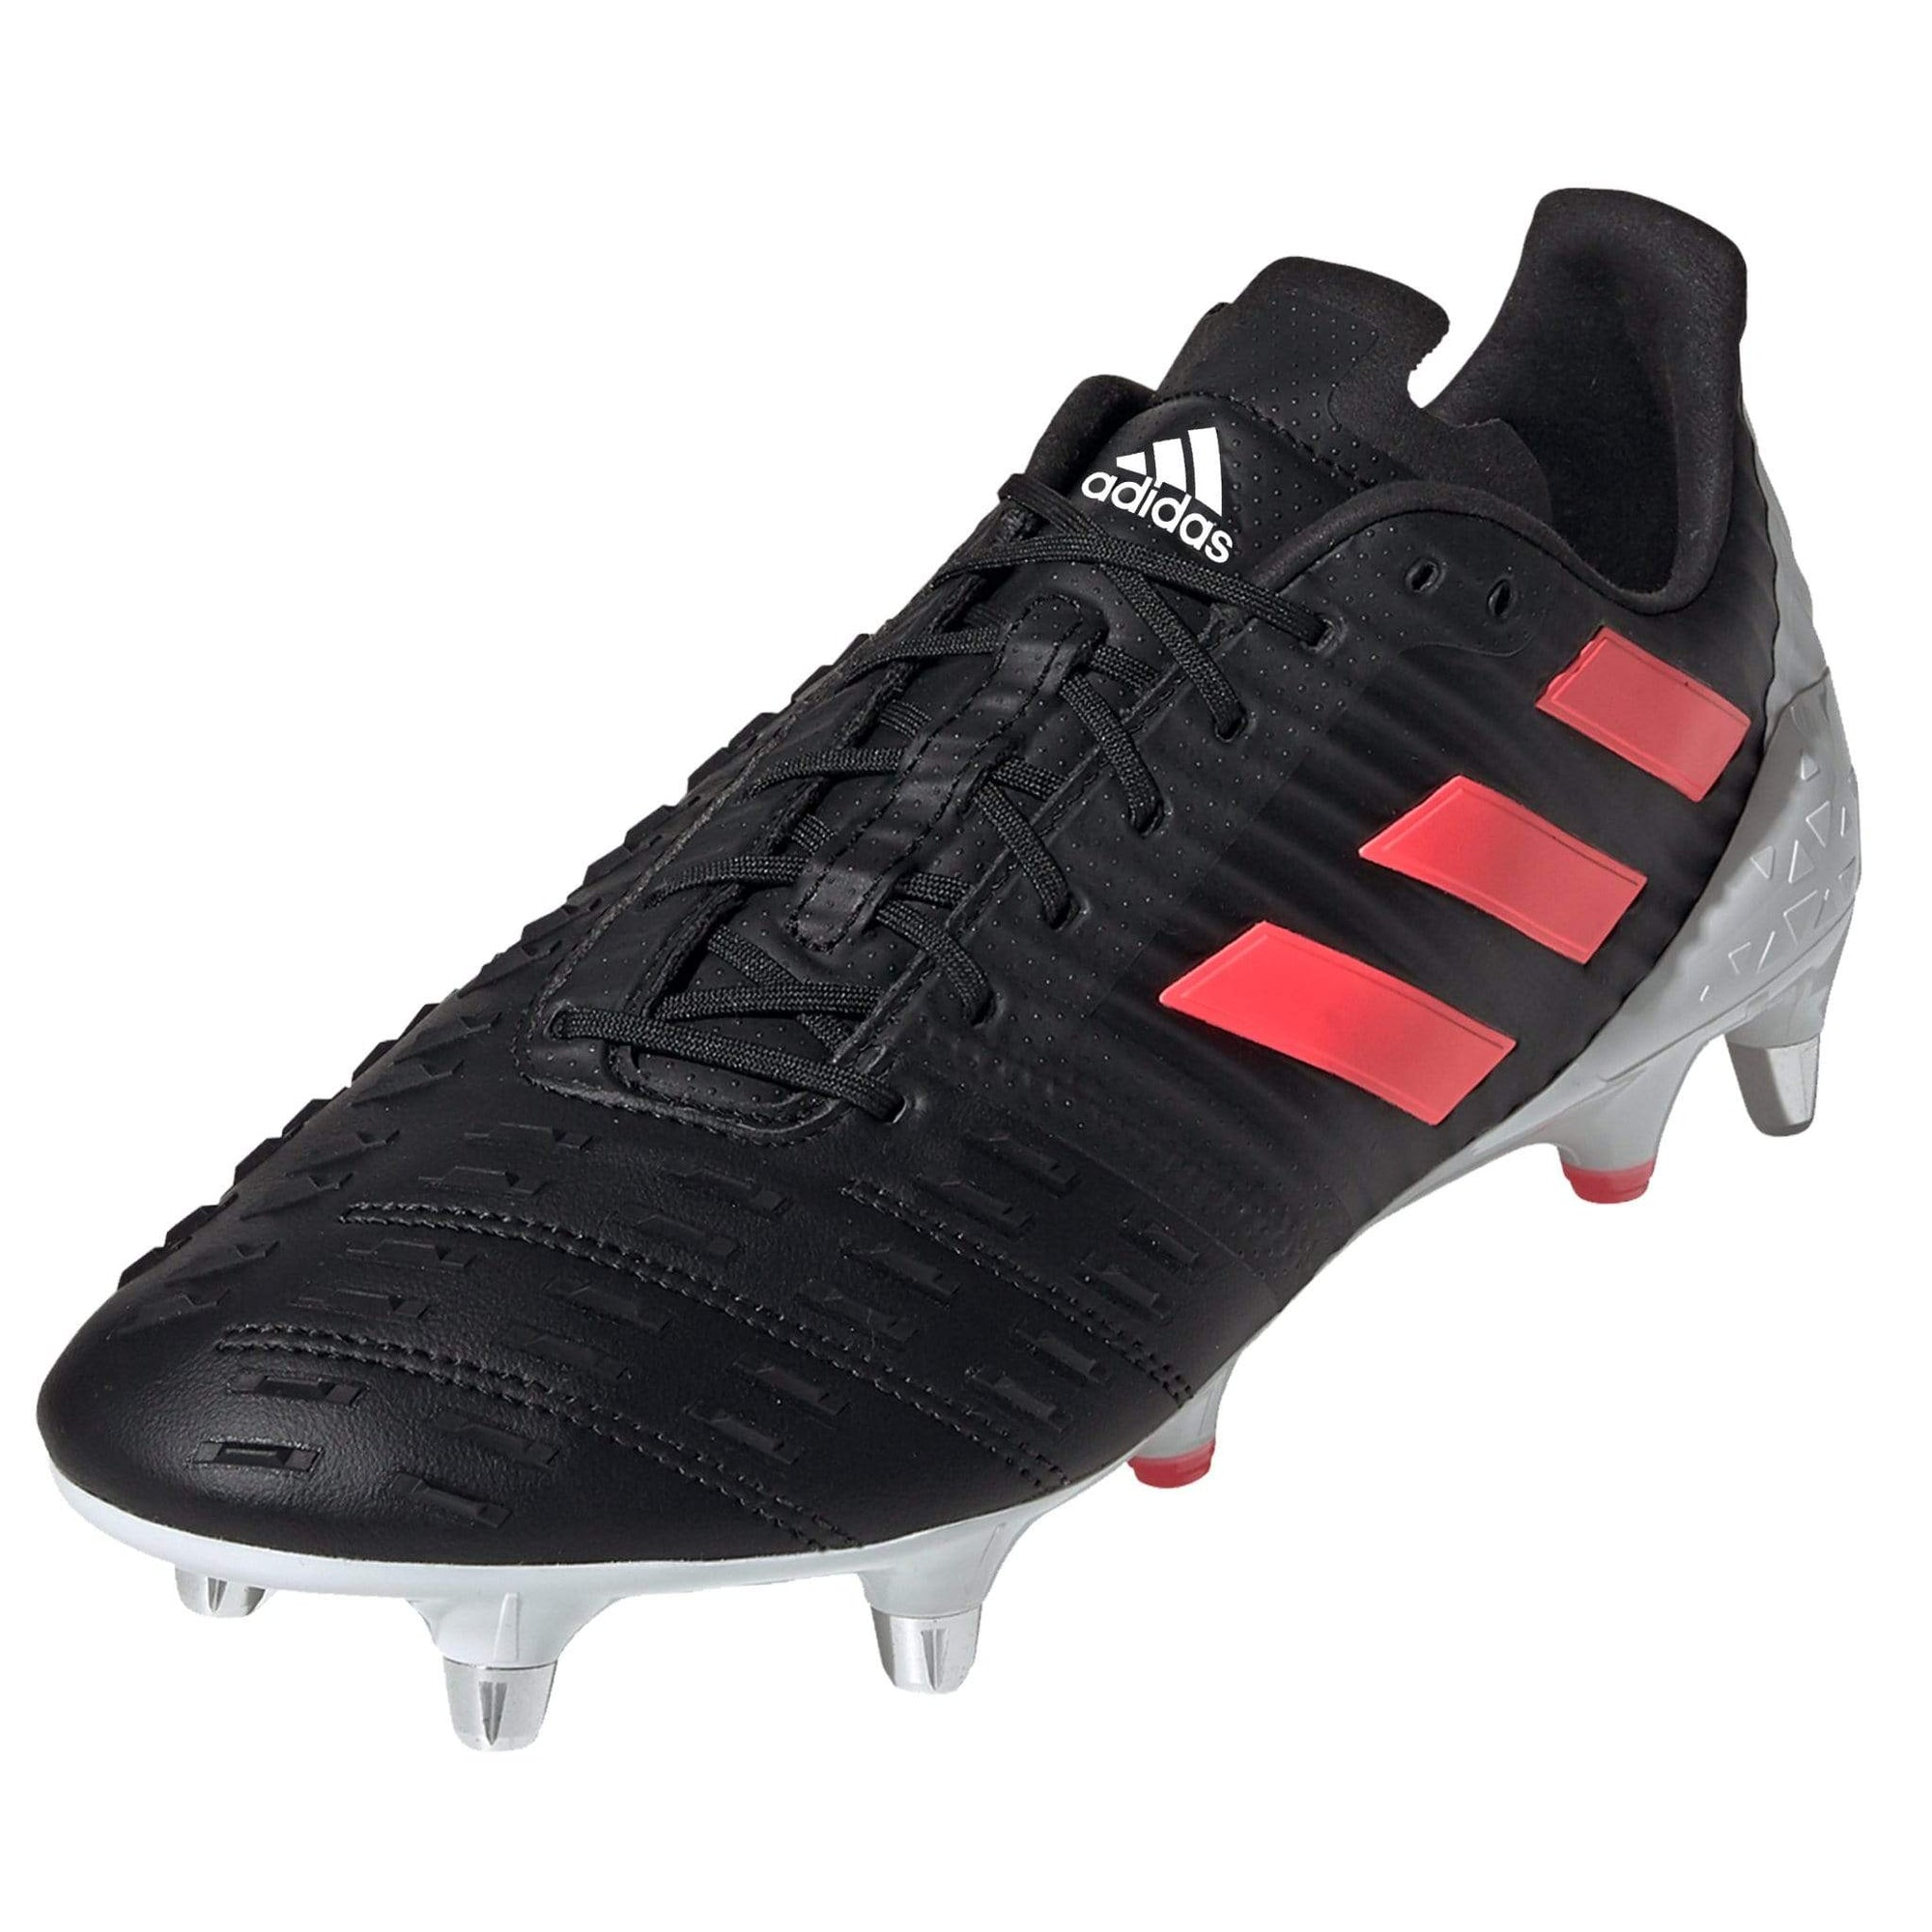 Front View Black Adidas Rugby Boot With Pink Stripes Black Laces